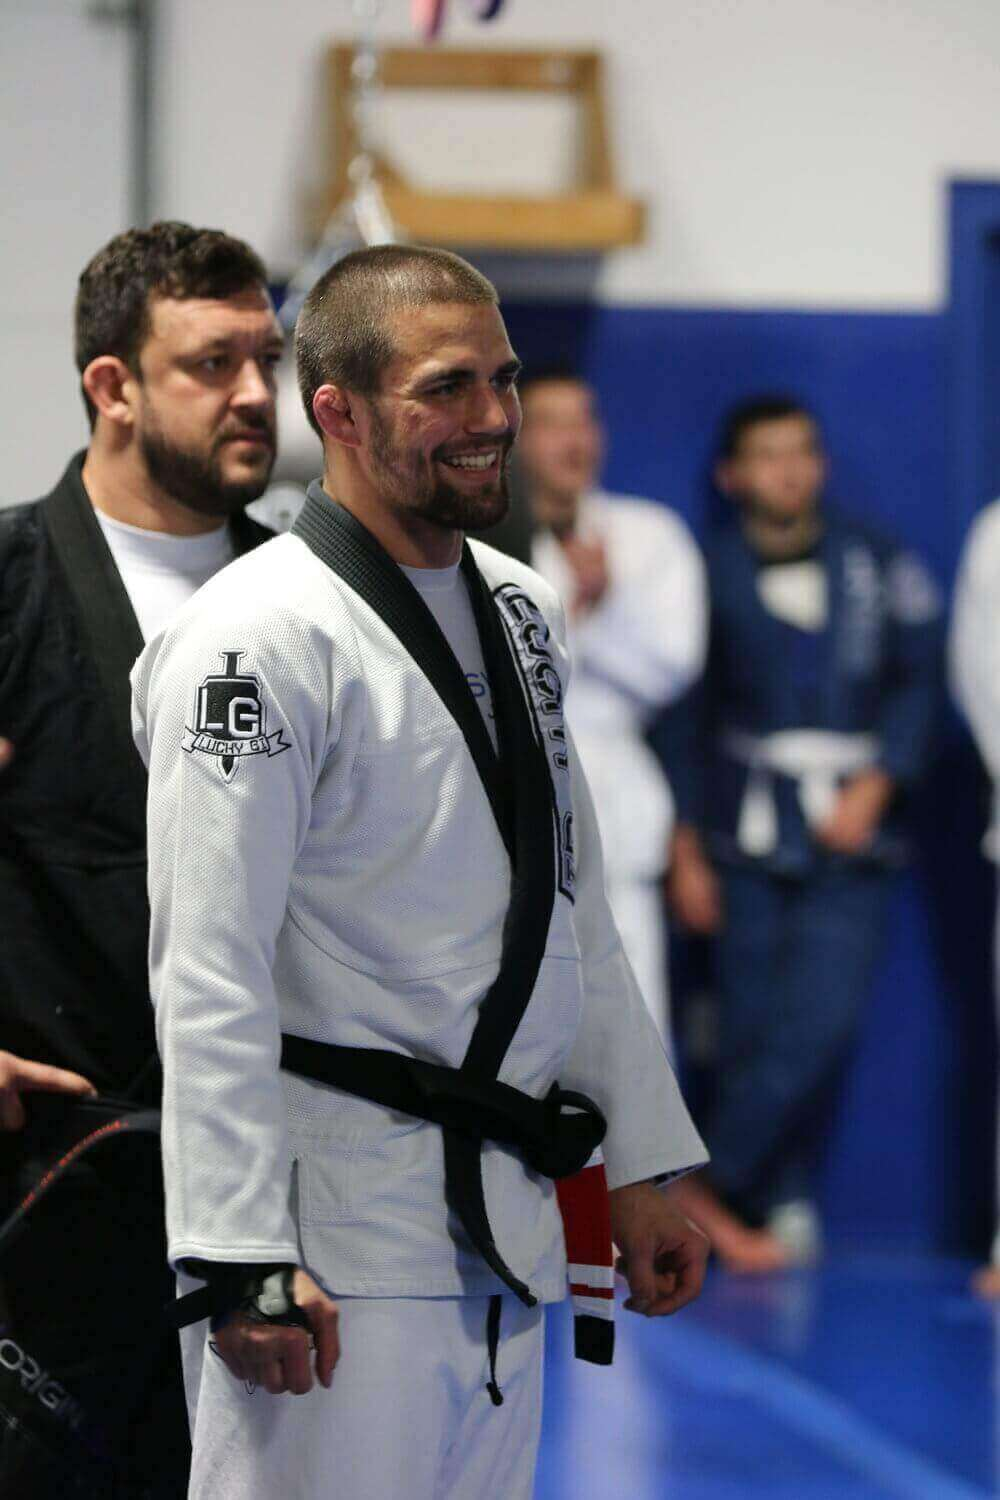 Garry-Tonon-black belt